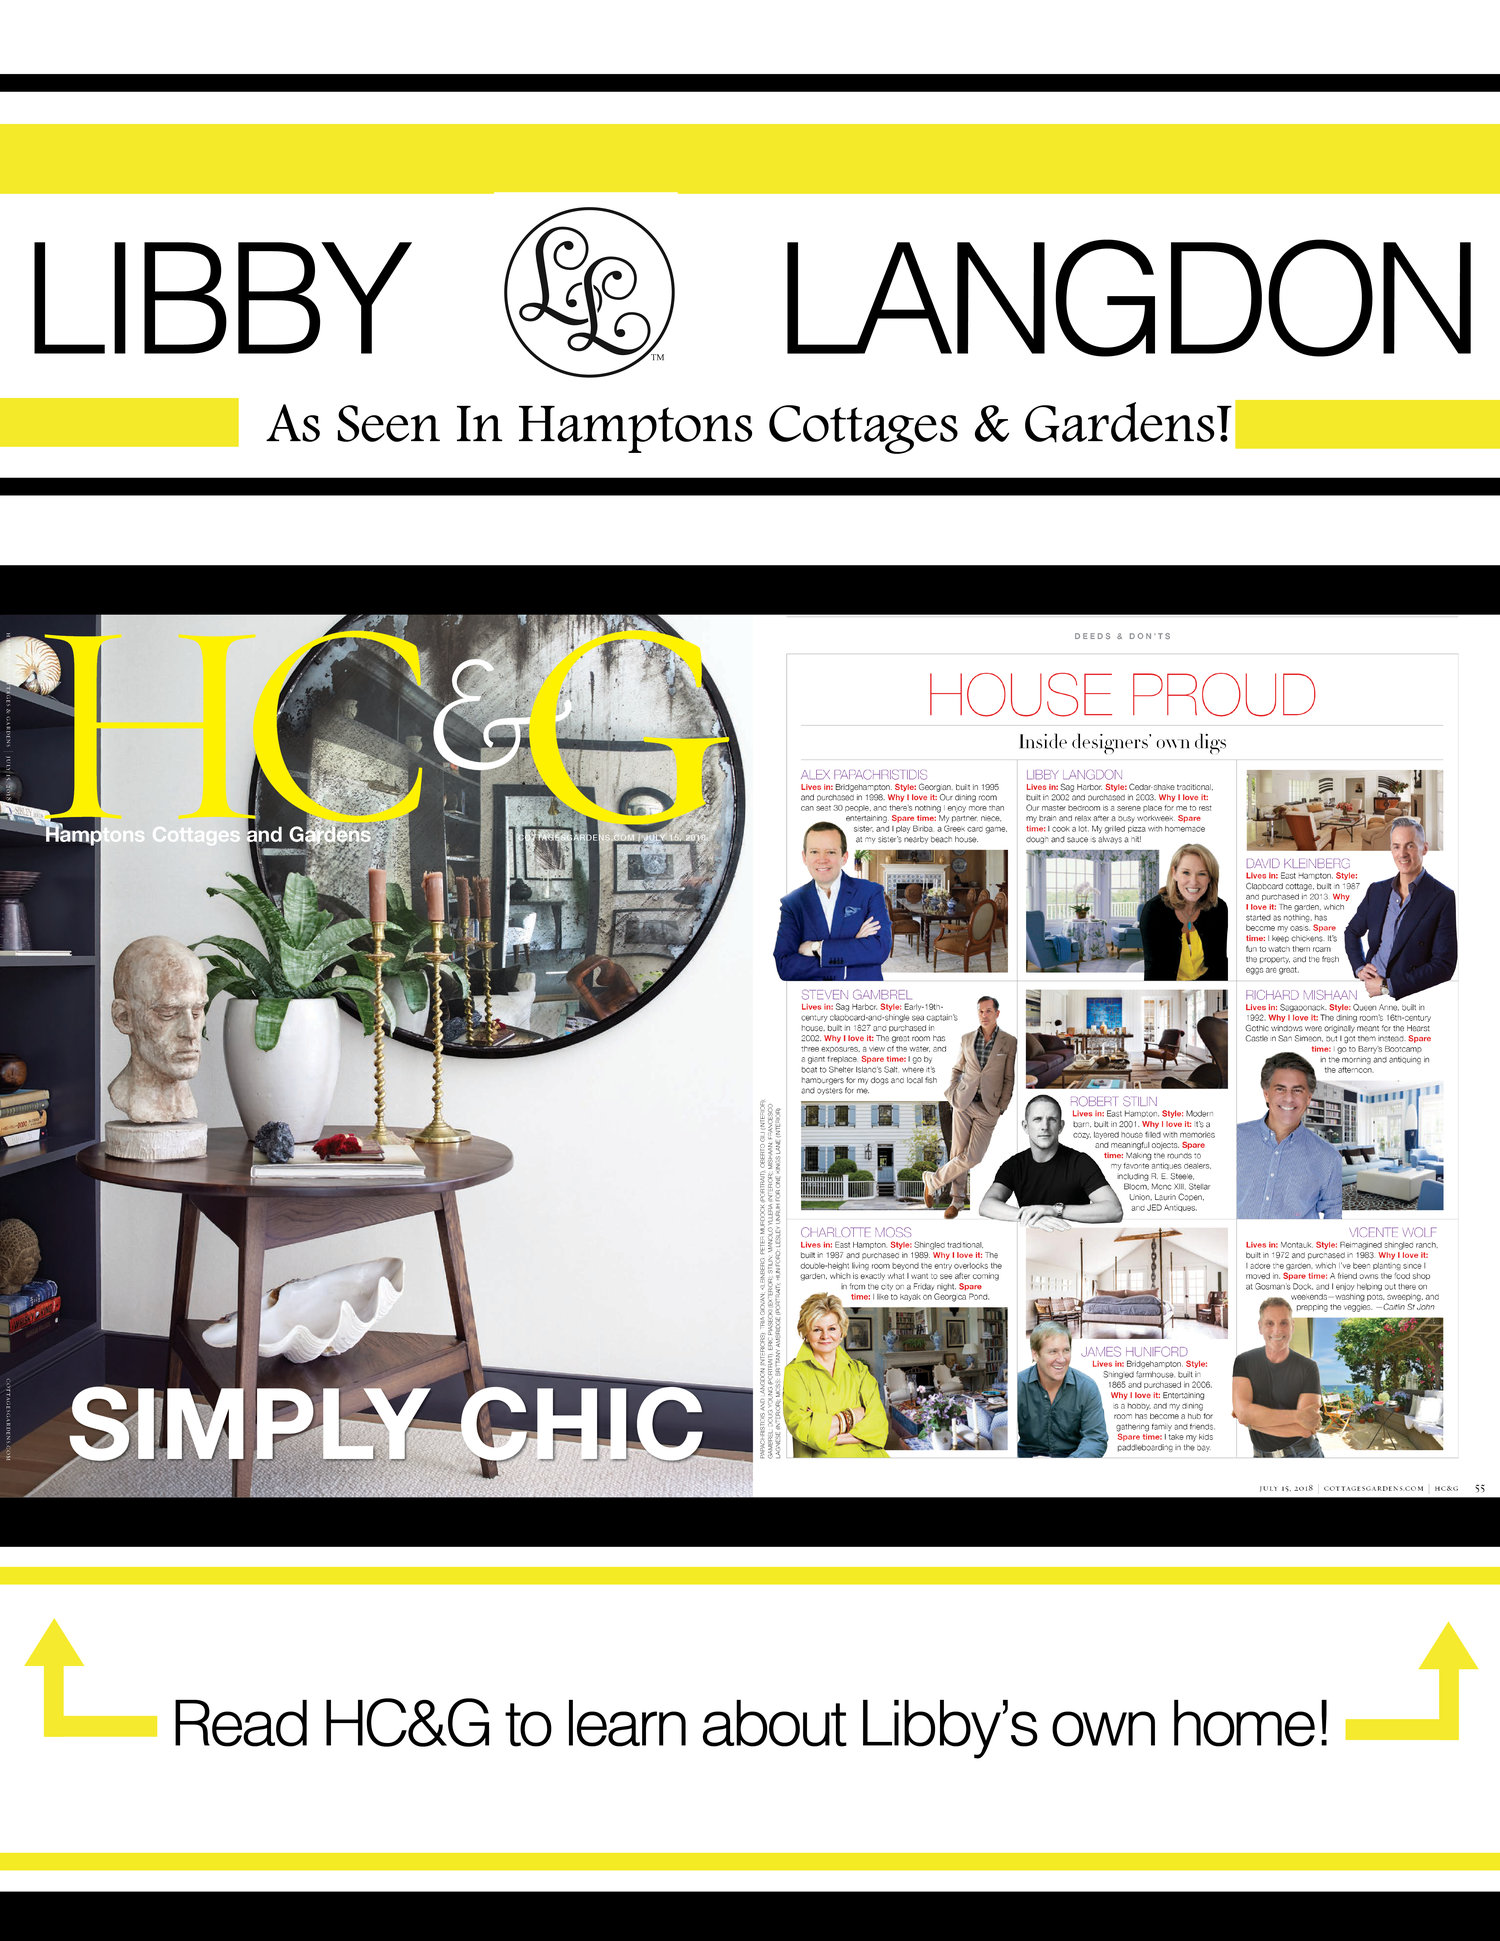 C&G Media Group Includes Libby in This July's Hamptons